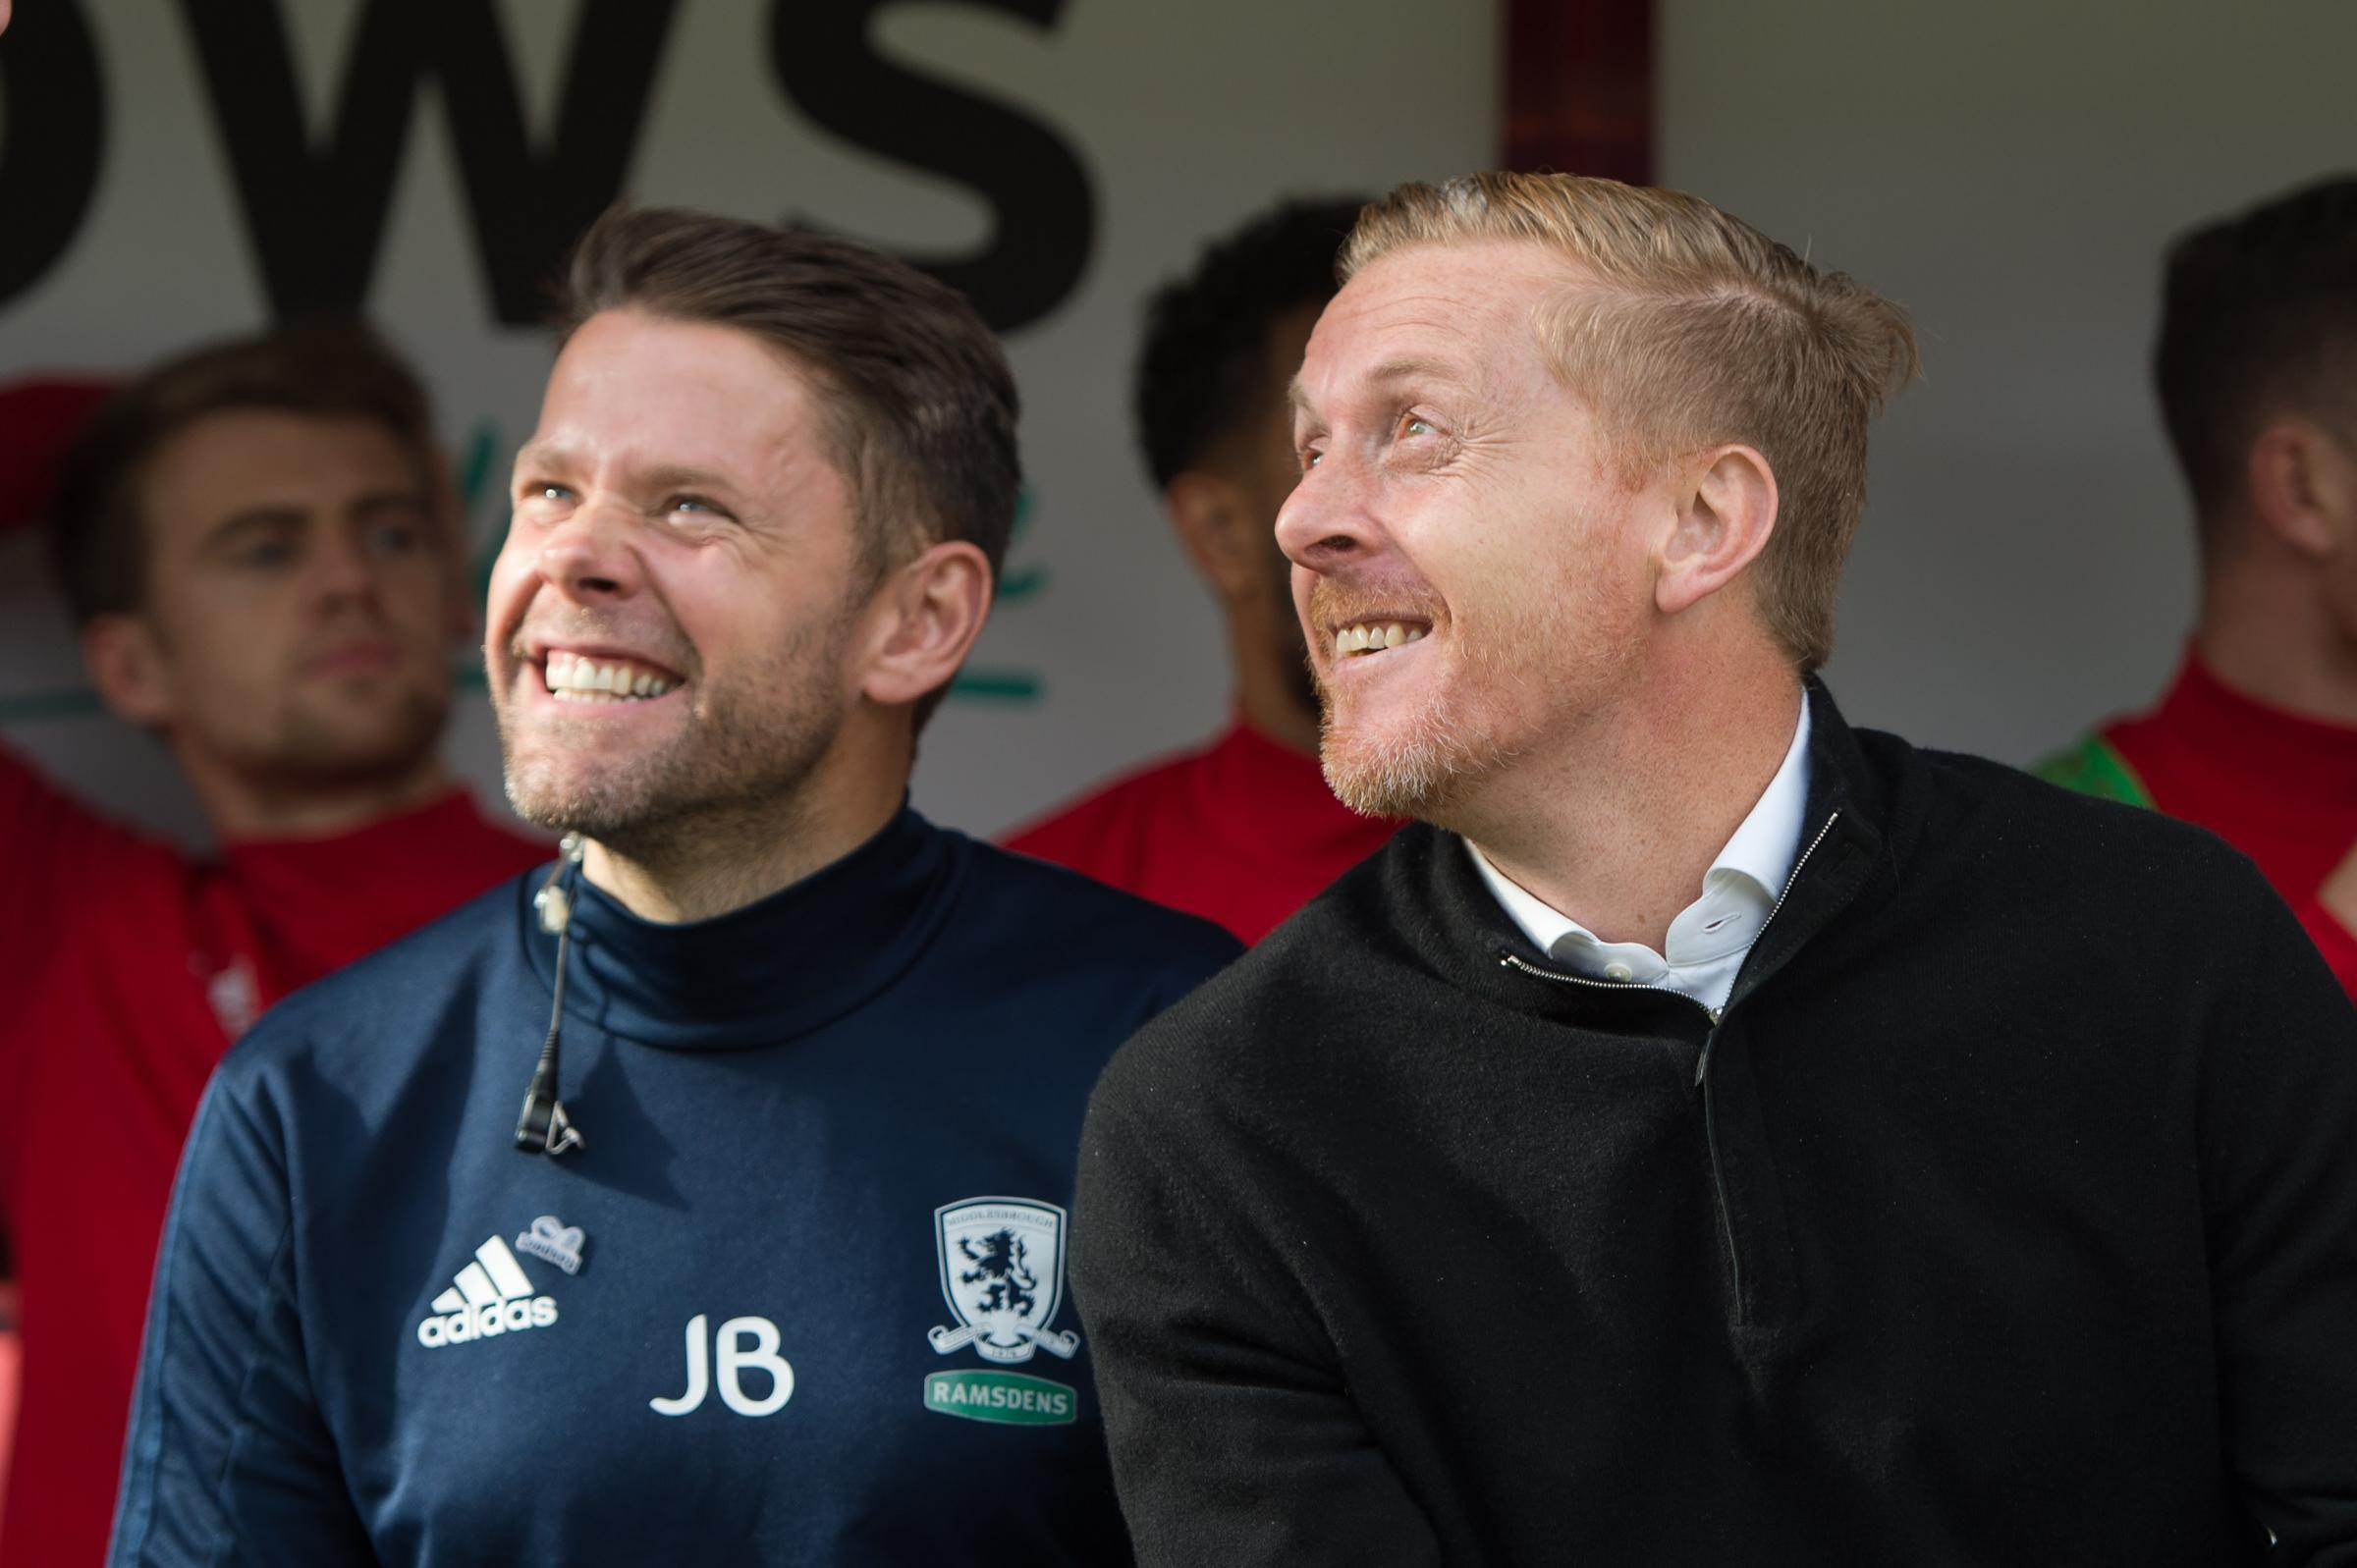 James Beattie (left) and Garry Monk. Photo: Pat Isaacs, MI News & Sport